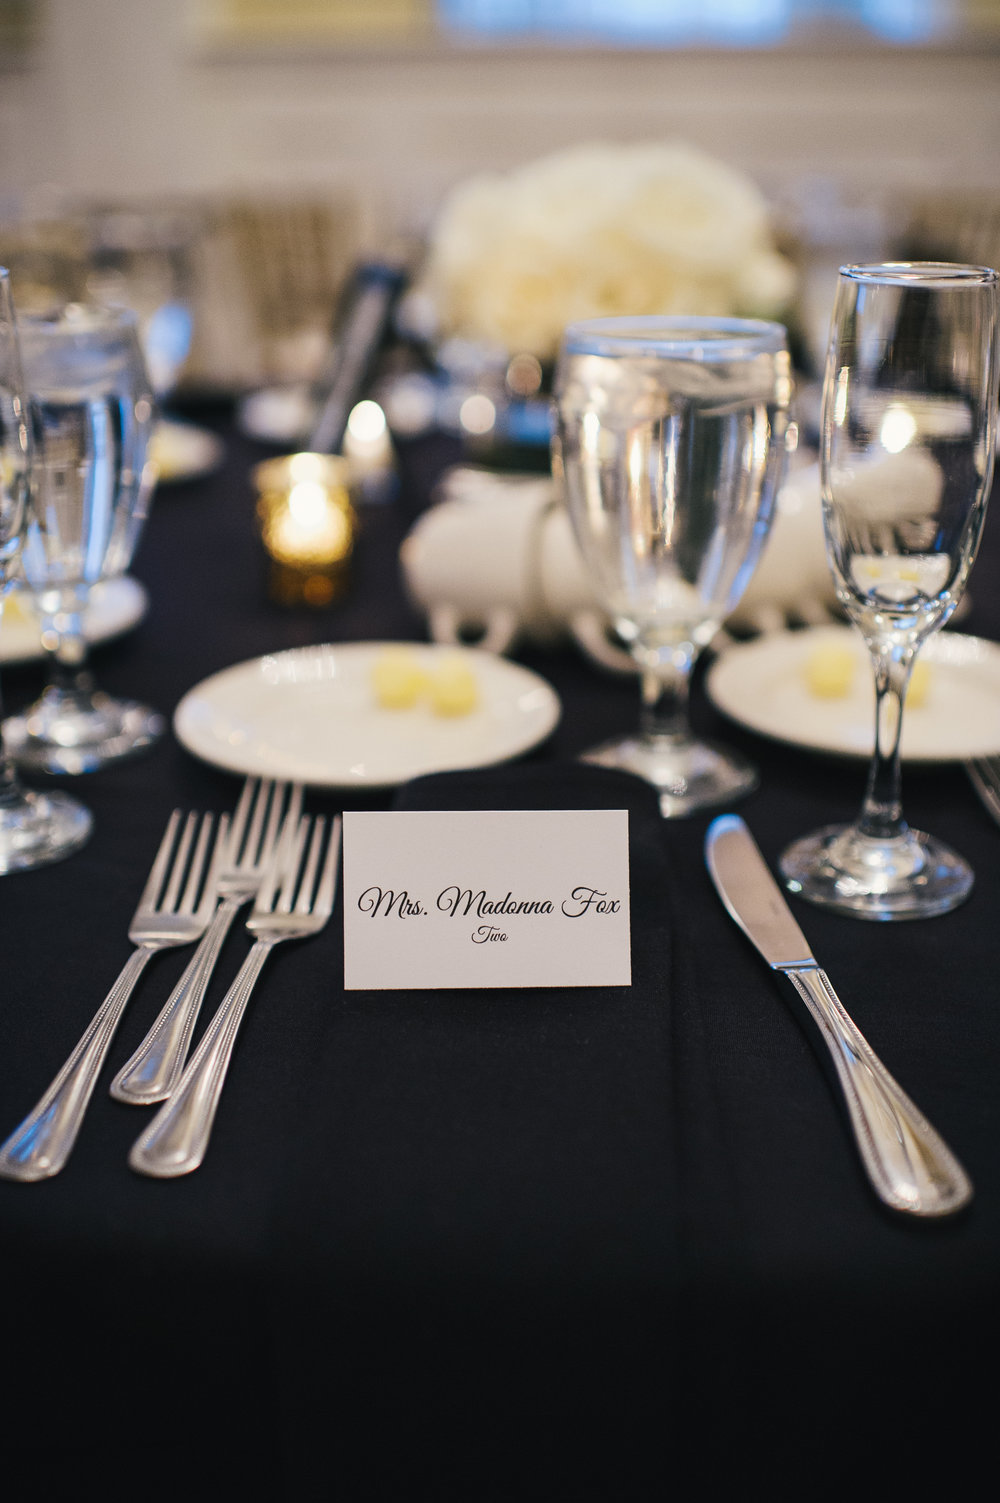 Black and white wedding table decor with wedding escort card for black, white, and gold wedding in Buffalo, NY planned by Exhale Events. Find more wedding inspiration at exhale-events.com!